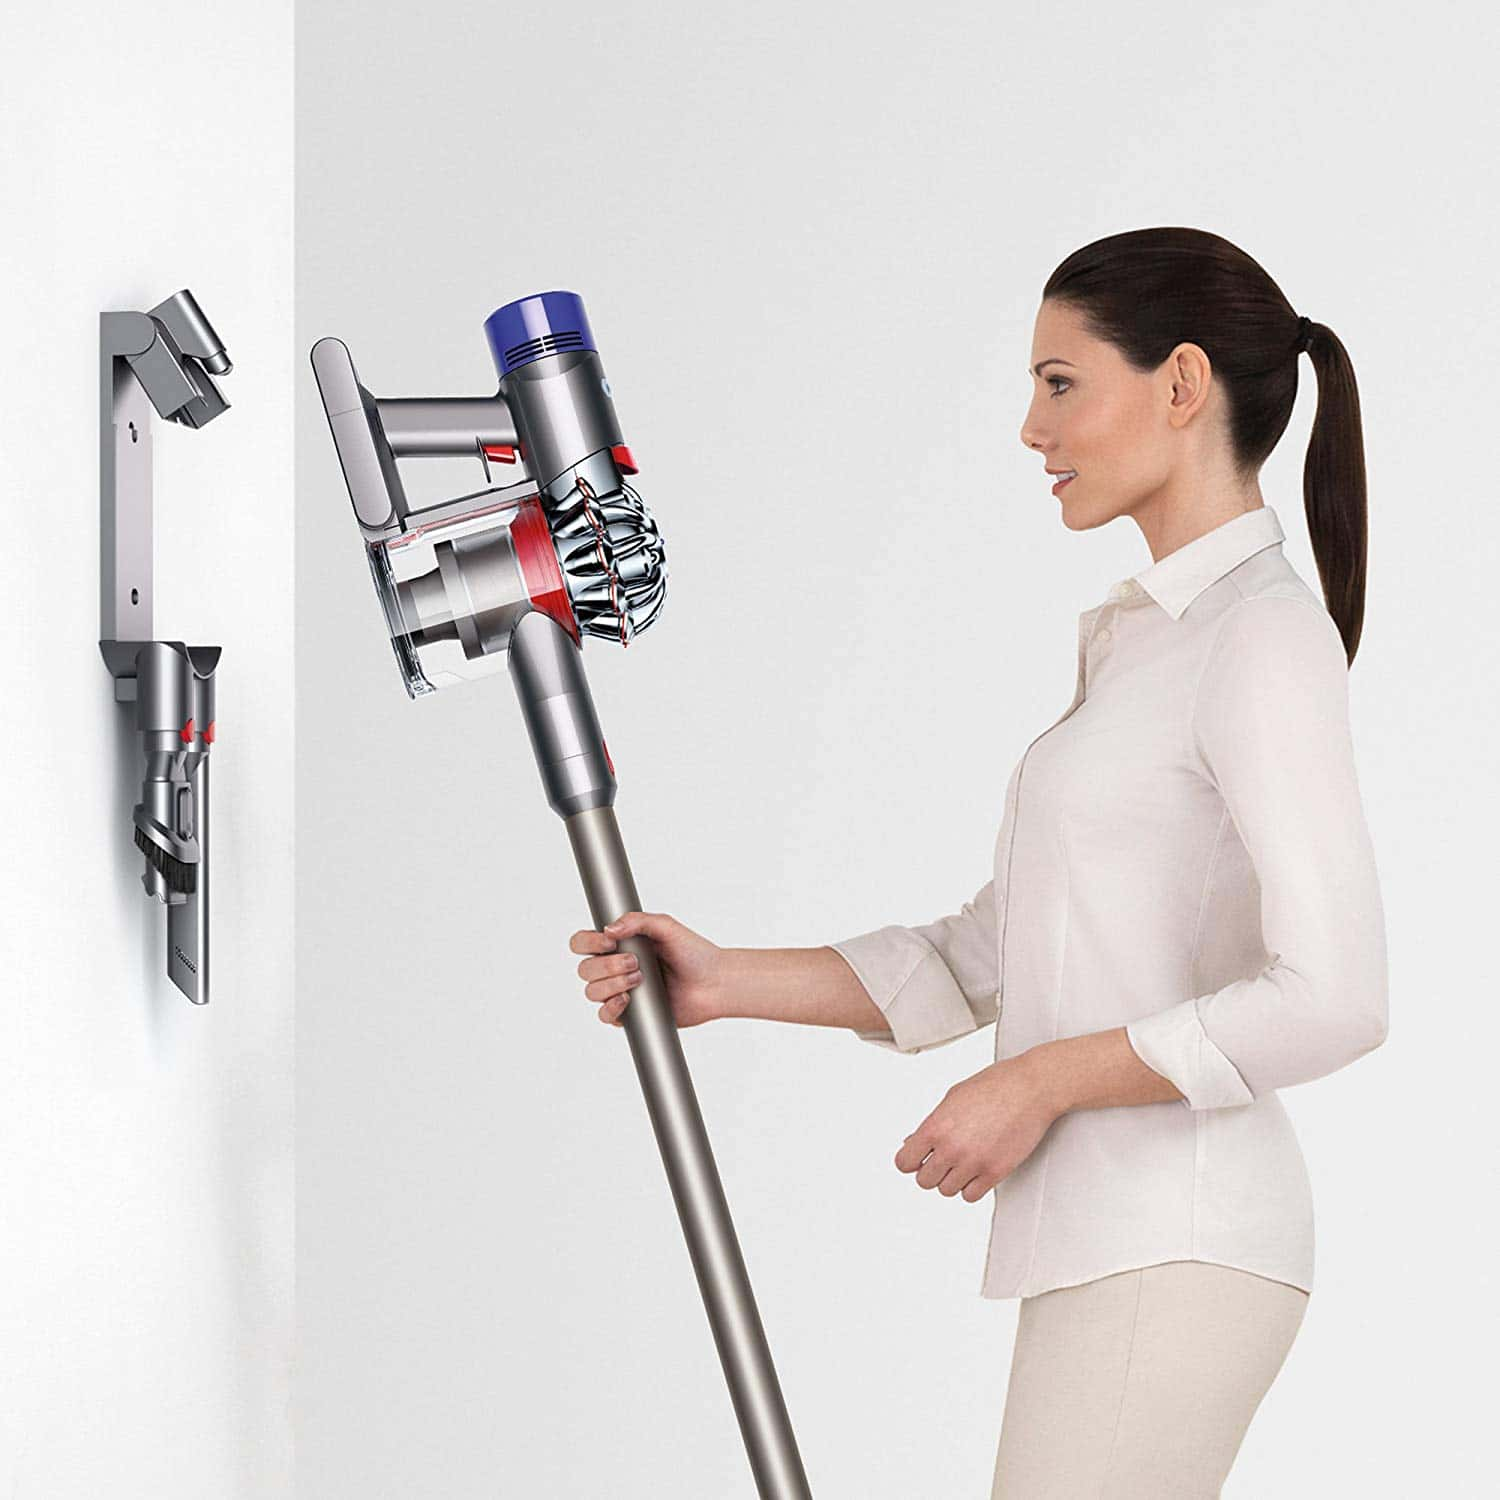 picture of hanging Dyson V7 on the wall